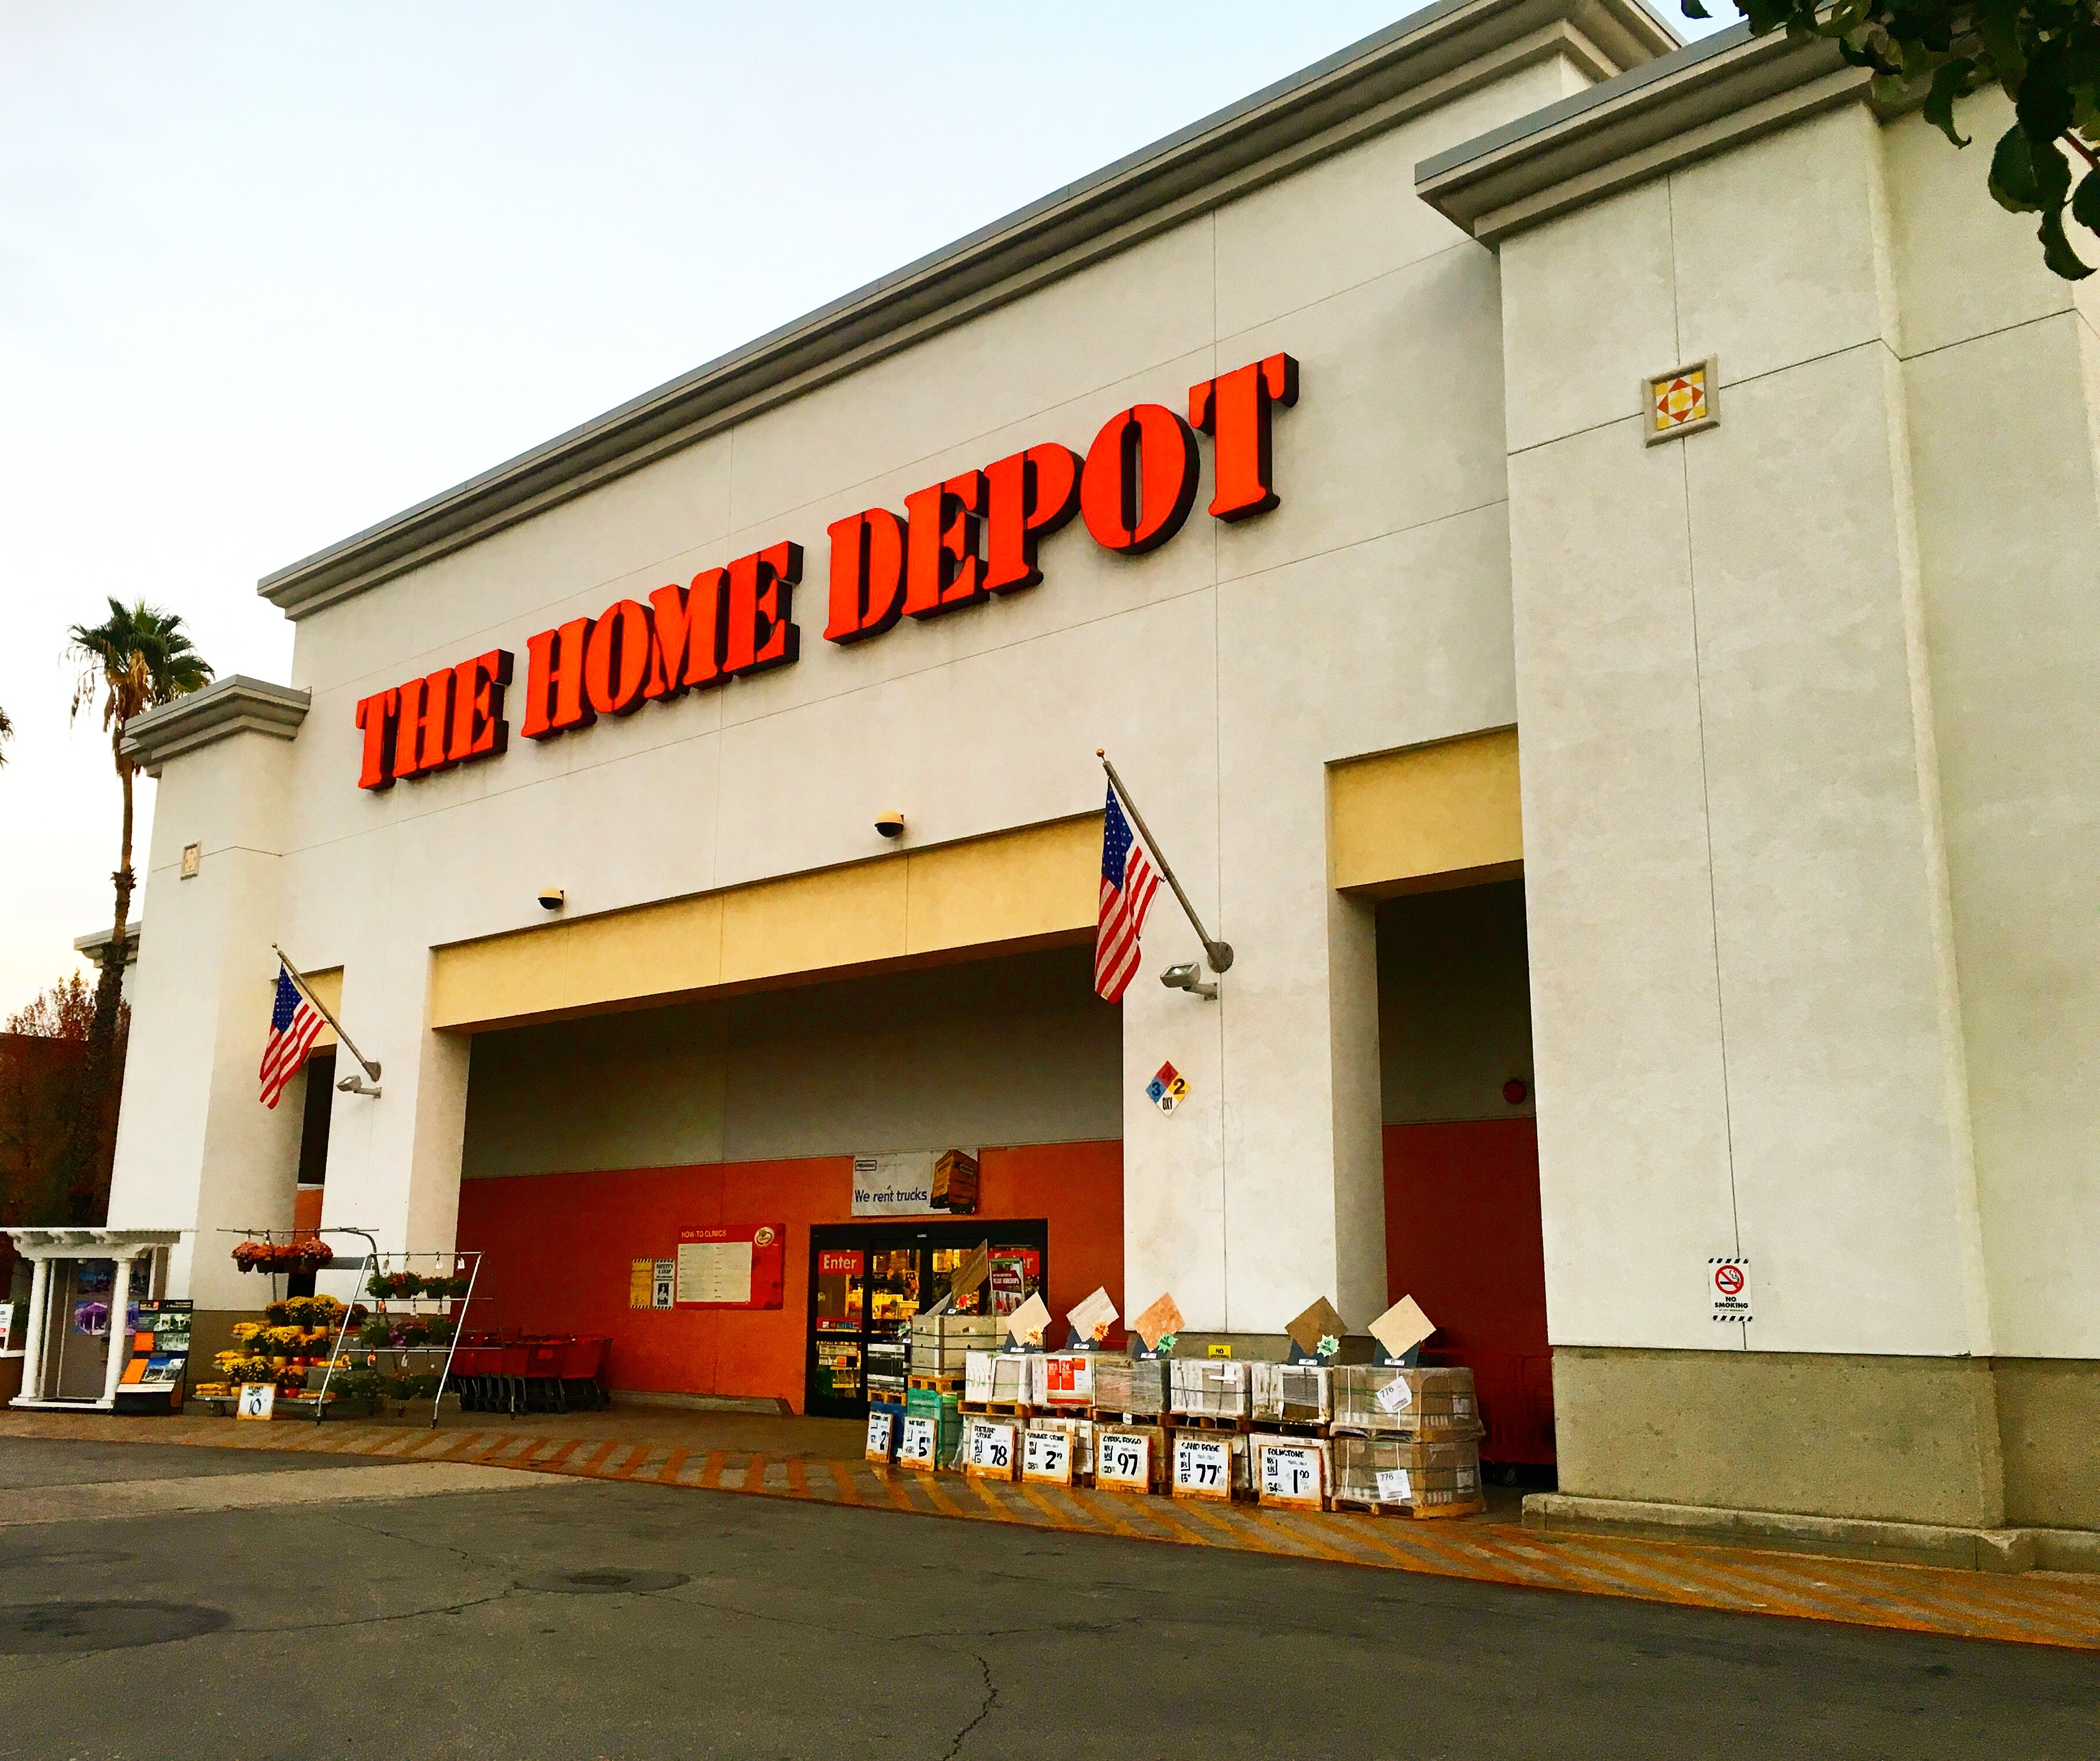 The Home Depot 11884 Foothill Blvd Rancho Cucamonga, CA Home Depot    MapQuest